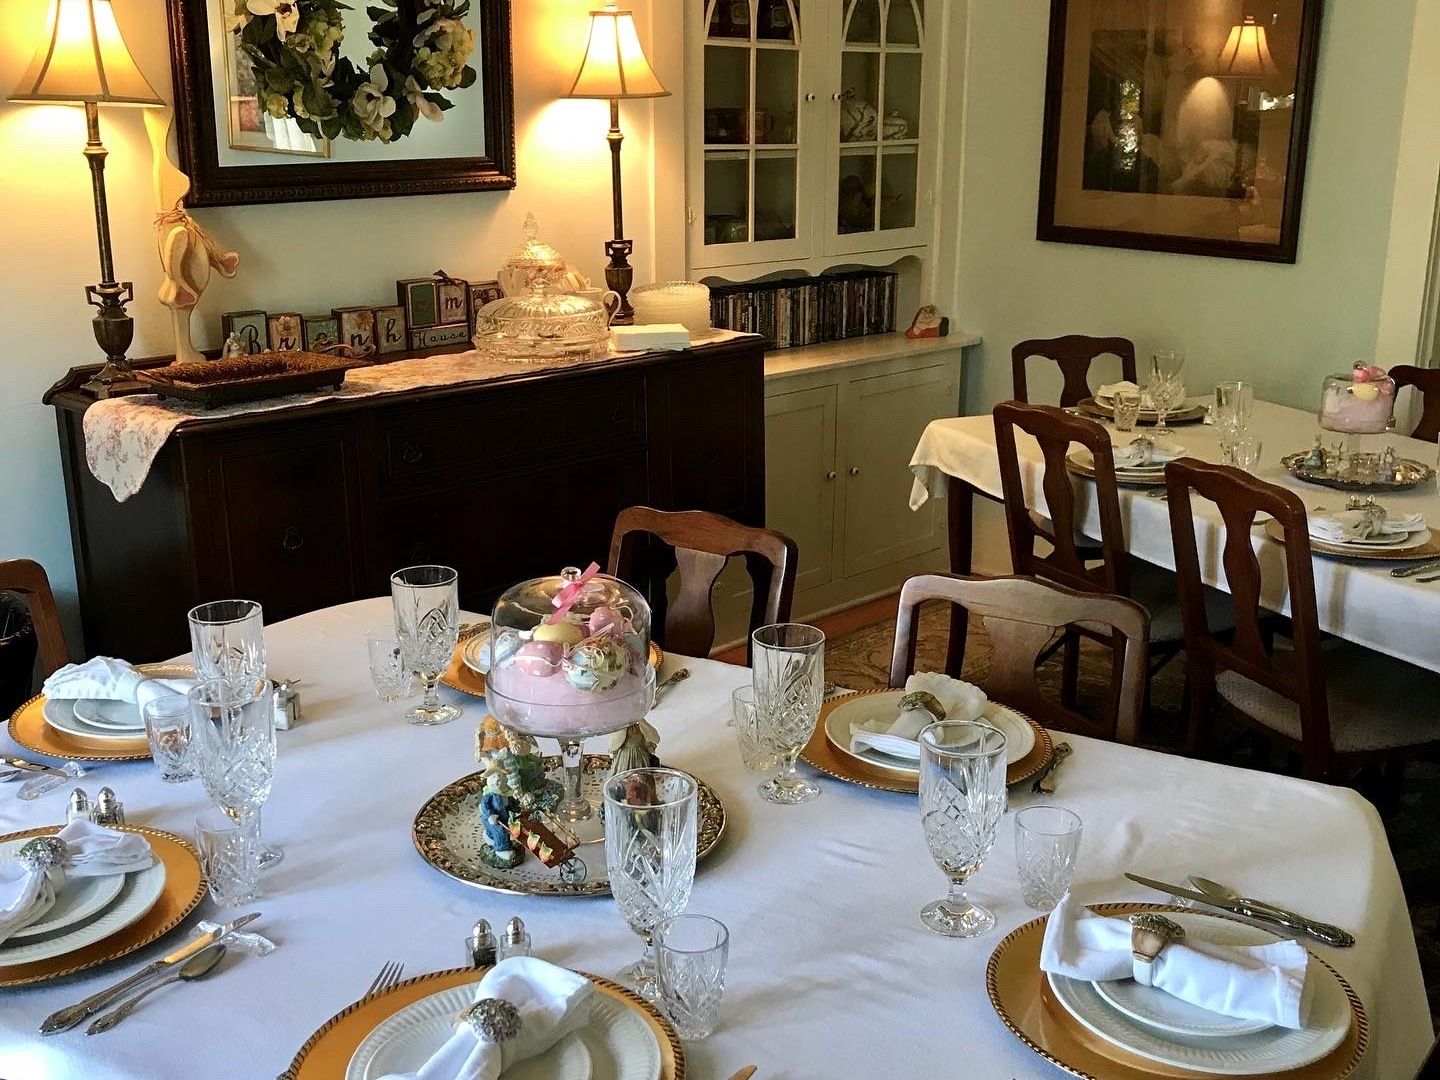 A dining table with a cake on a plate at Brenham House Bed and Breakfast.